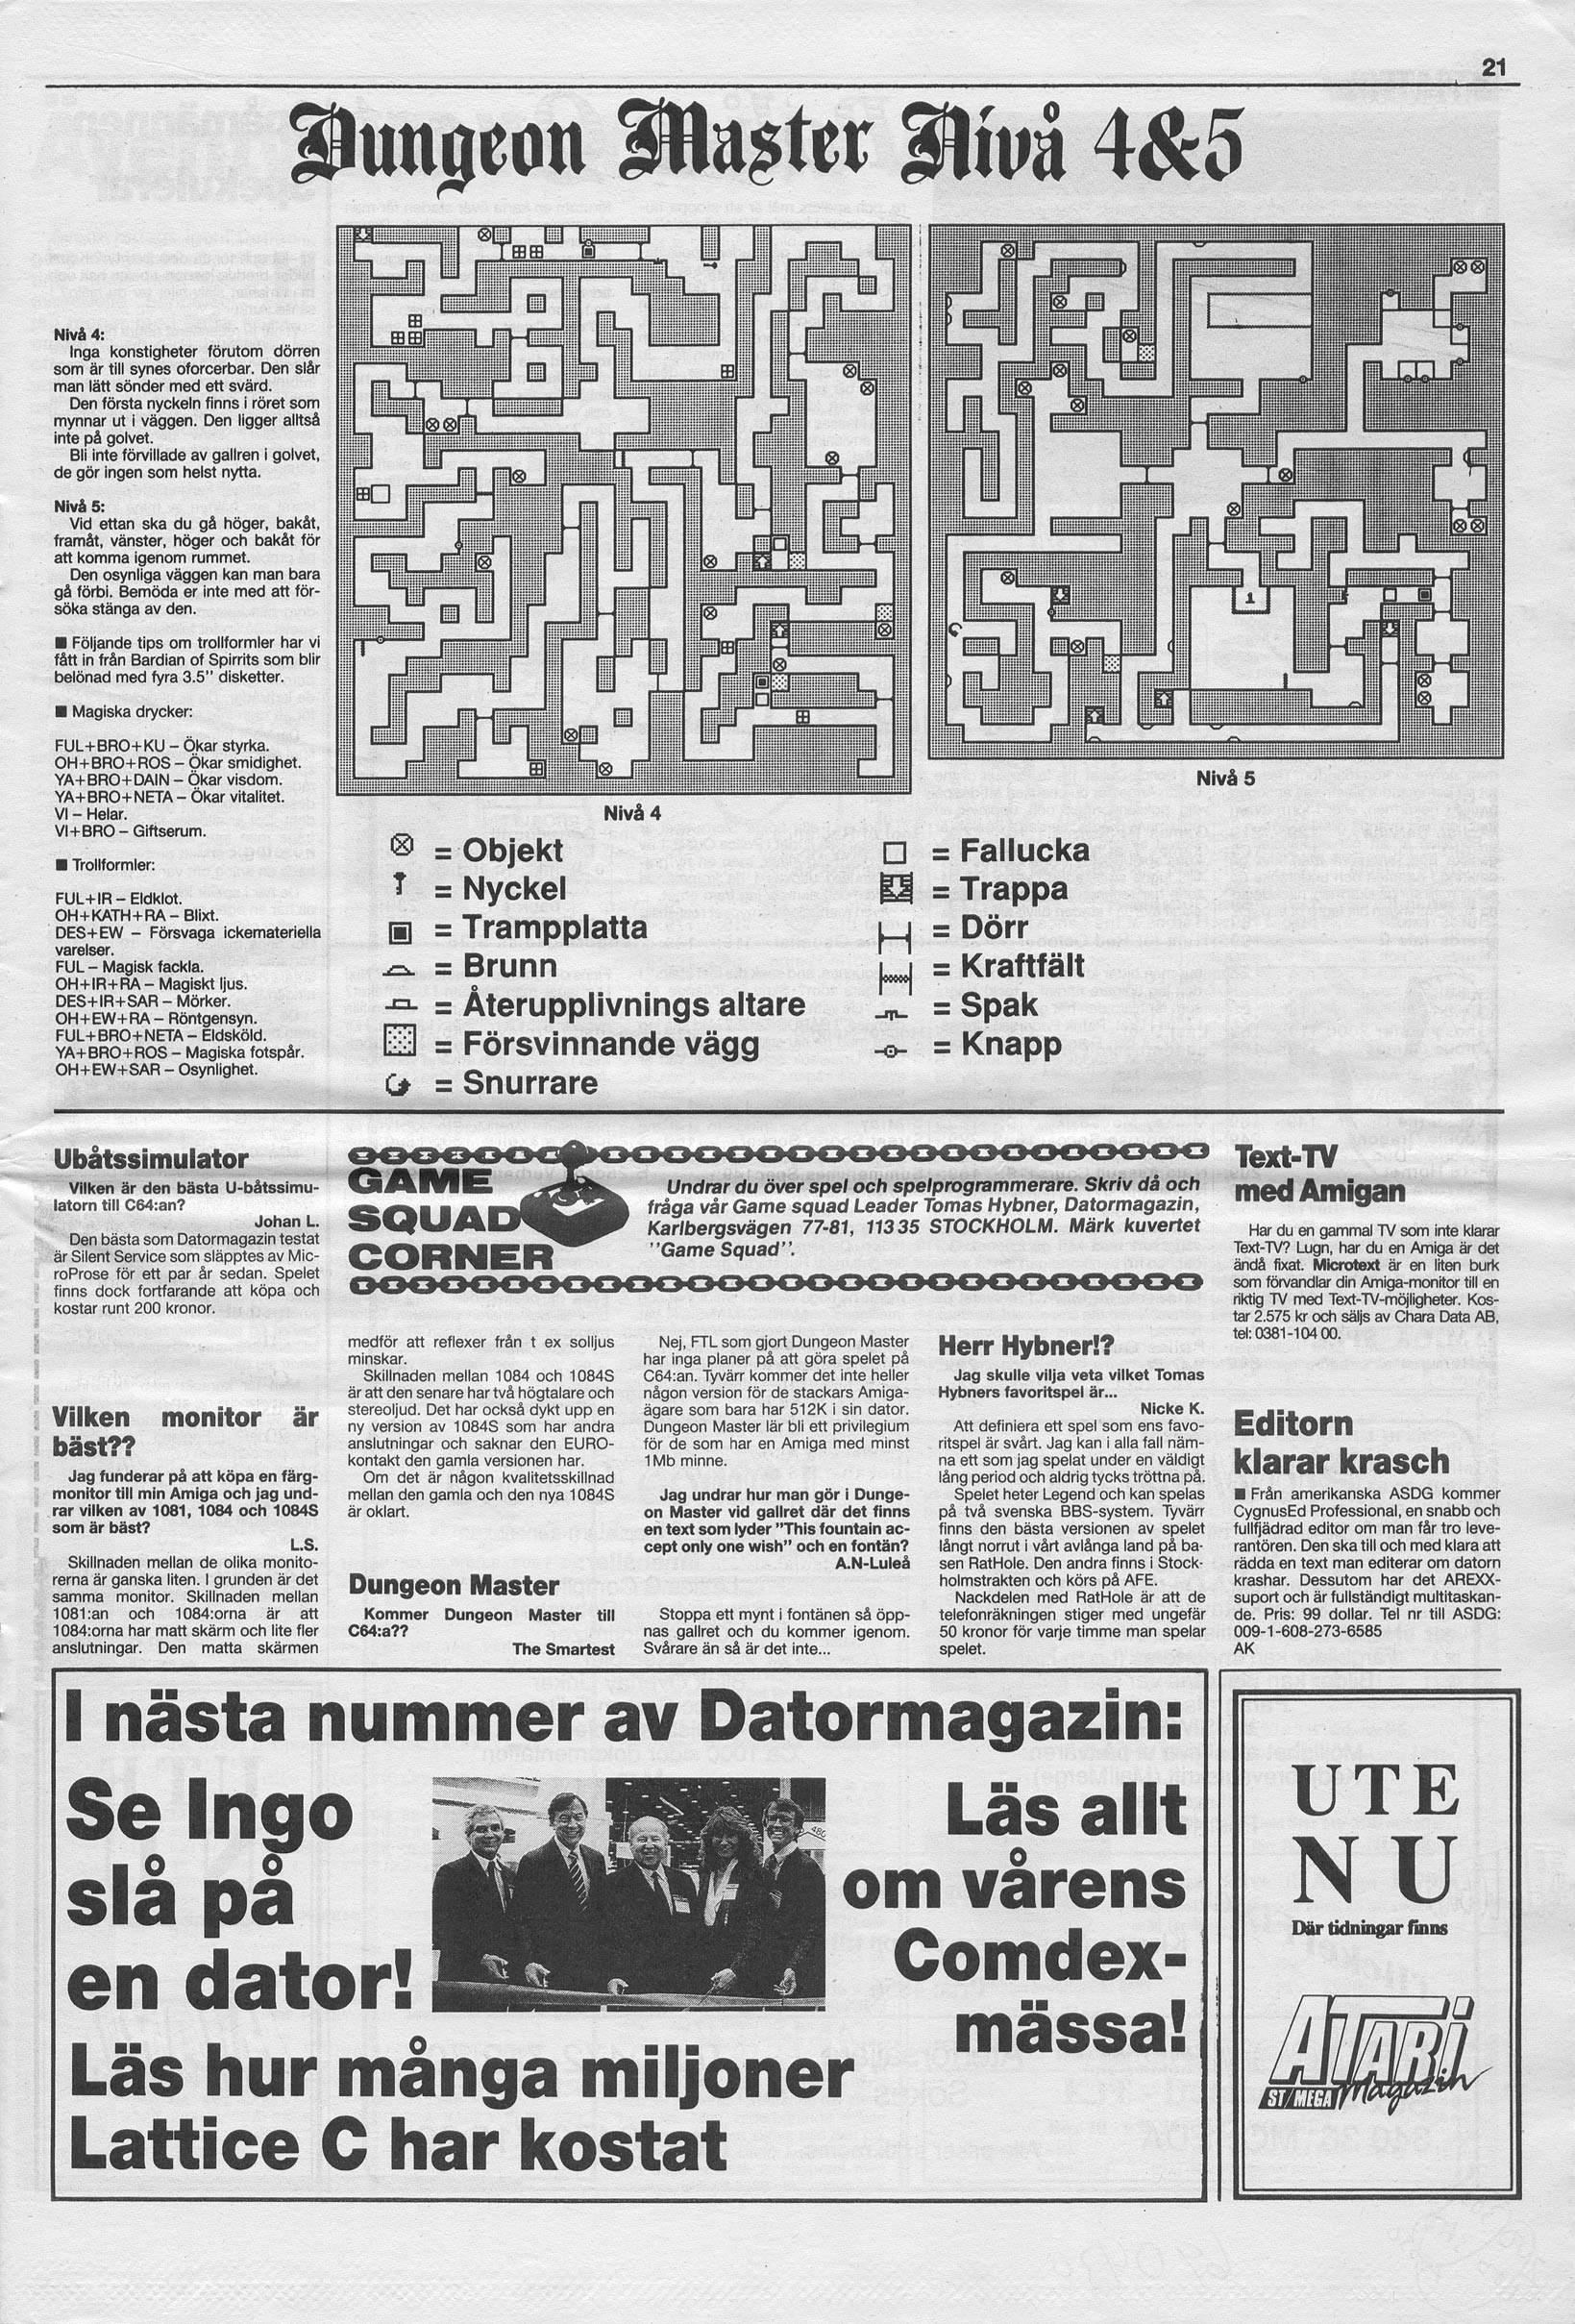 Dungeon Master Hints published in Swedish magazine 'Datormagazin', Vol. 1989 No. 6, April 1989, Page 21